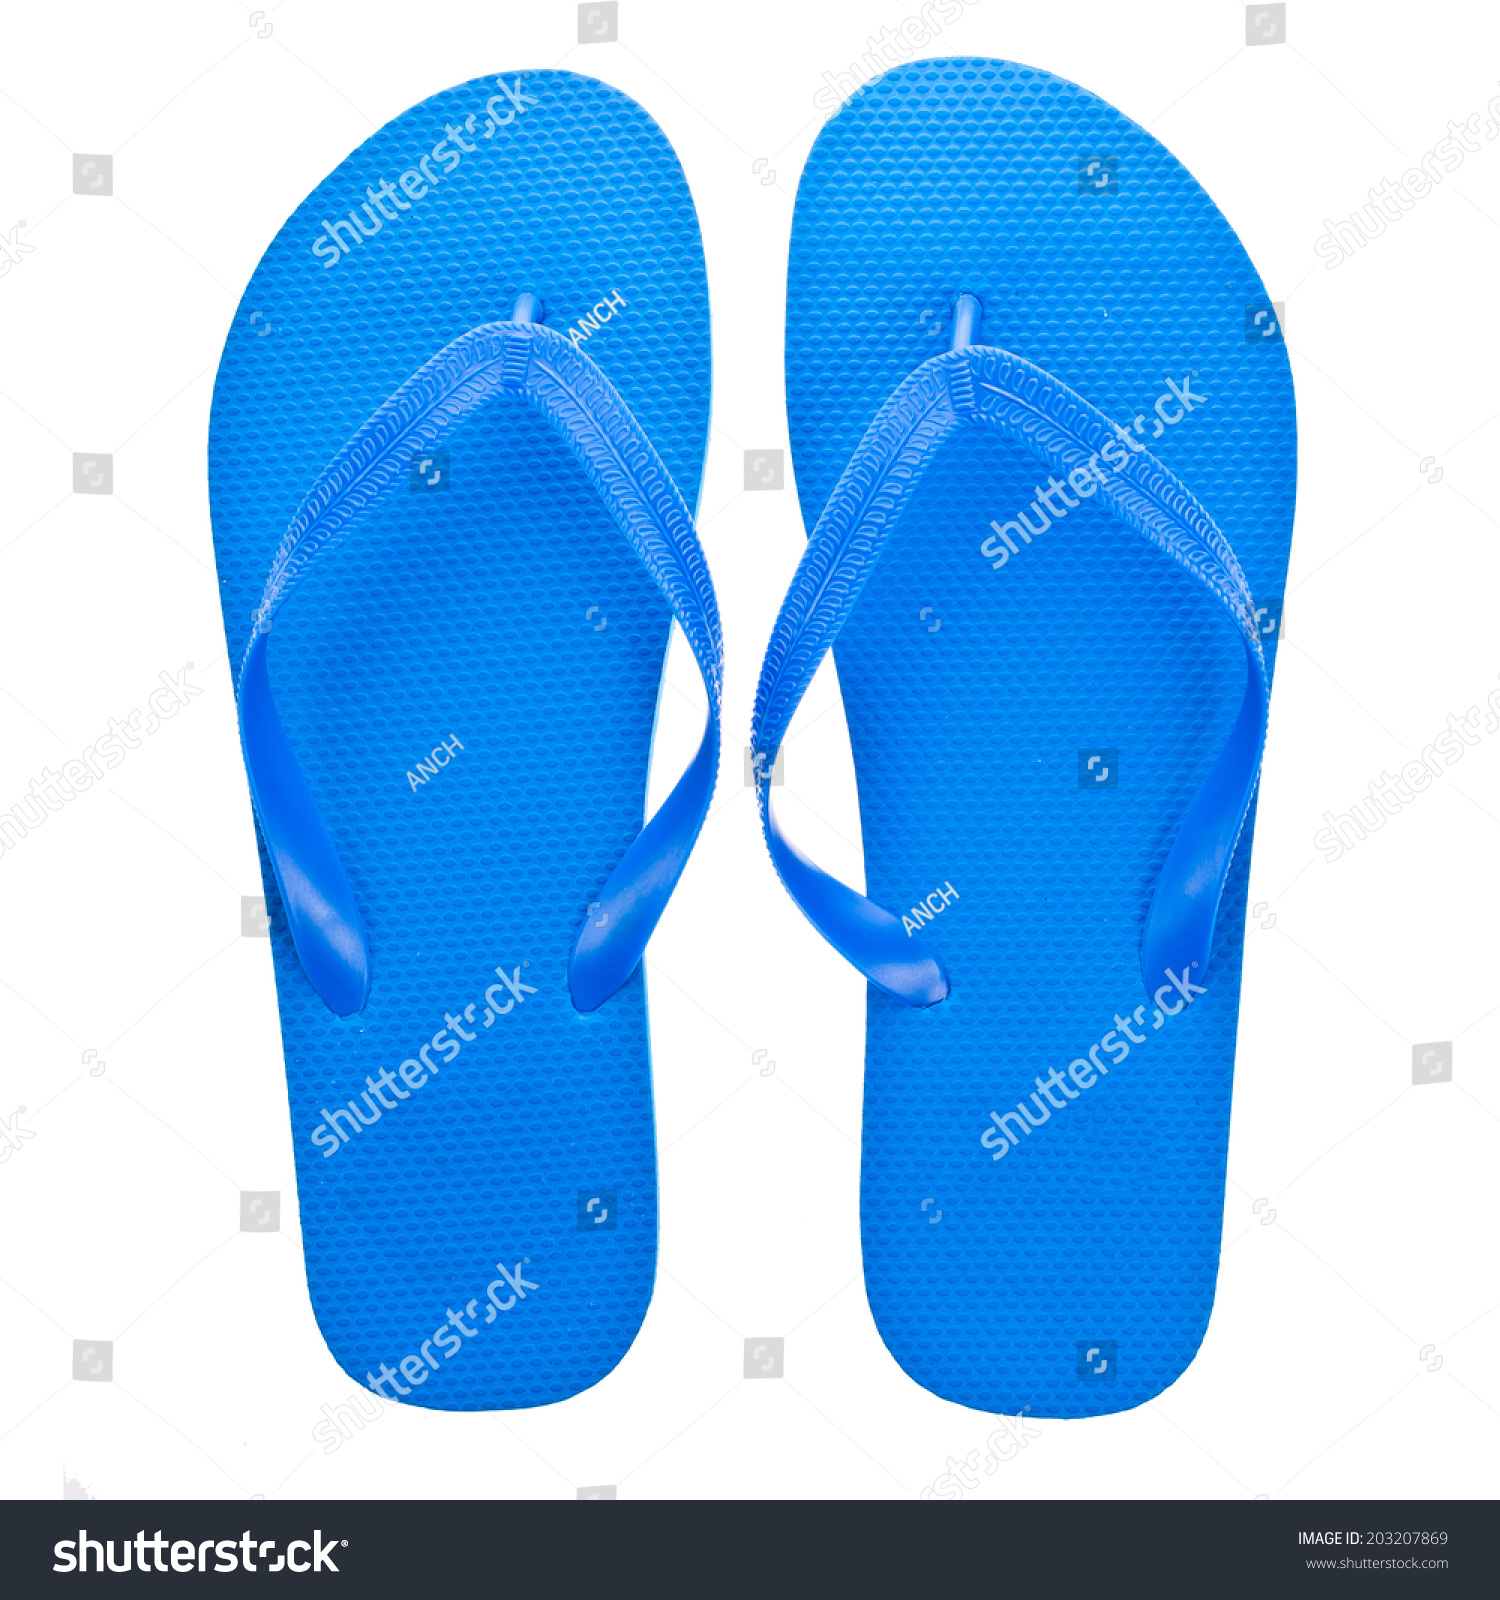 7d2b60b325a5 Blue Beach Sandals Flip Flops Isolated Stock Photo (Edit Now ...